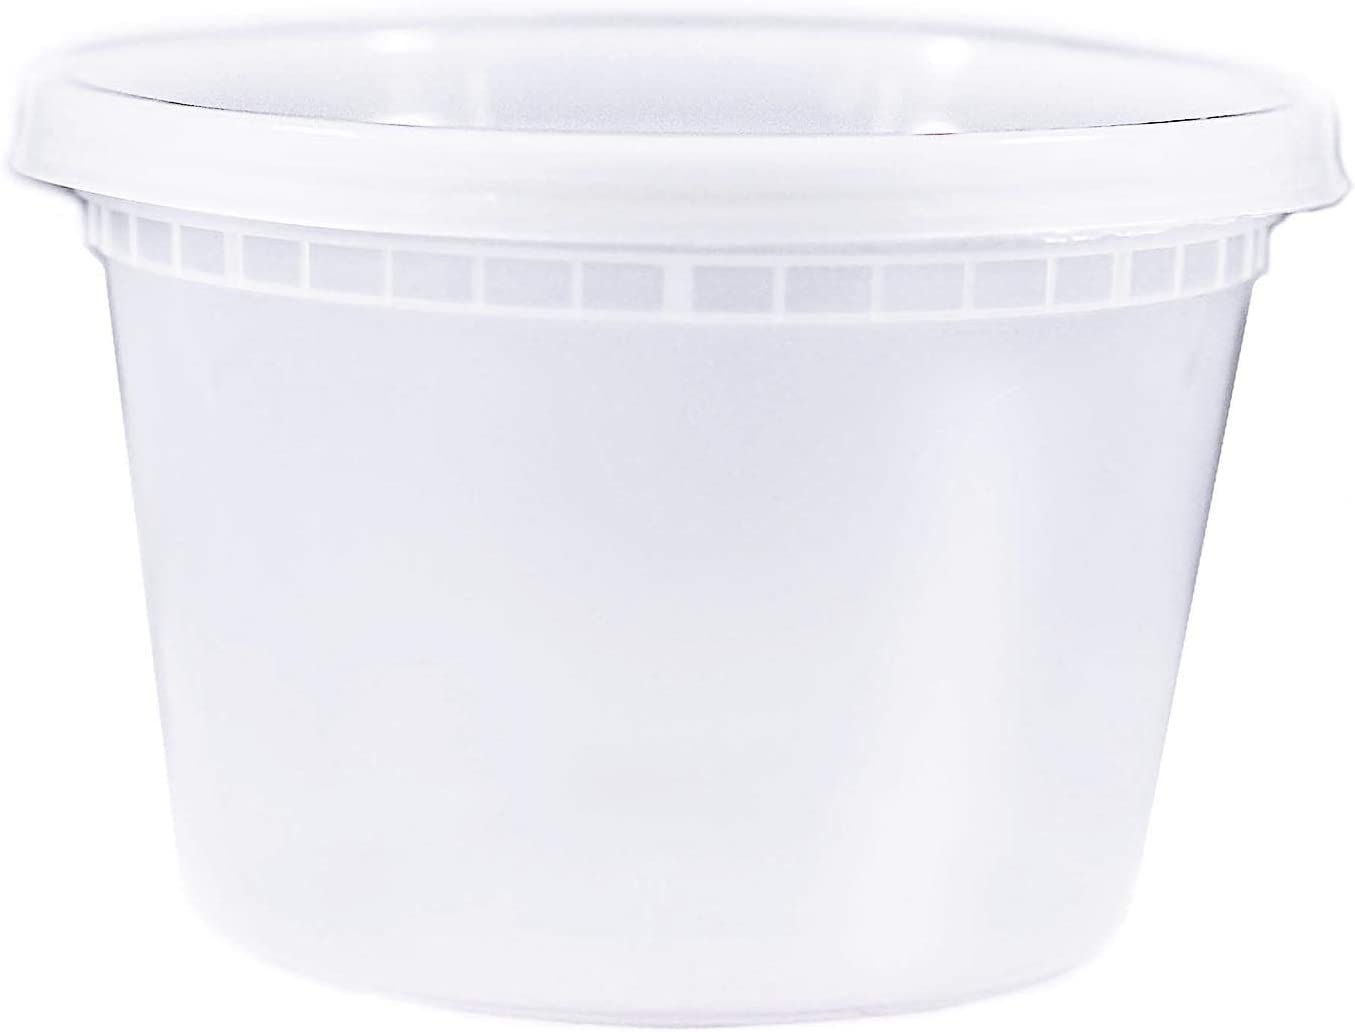 EDI Microwaveable Deli Containers with Leak proof Lids Food Storage Container 25 Packs (16 OZ)